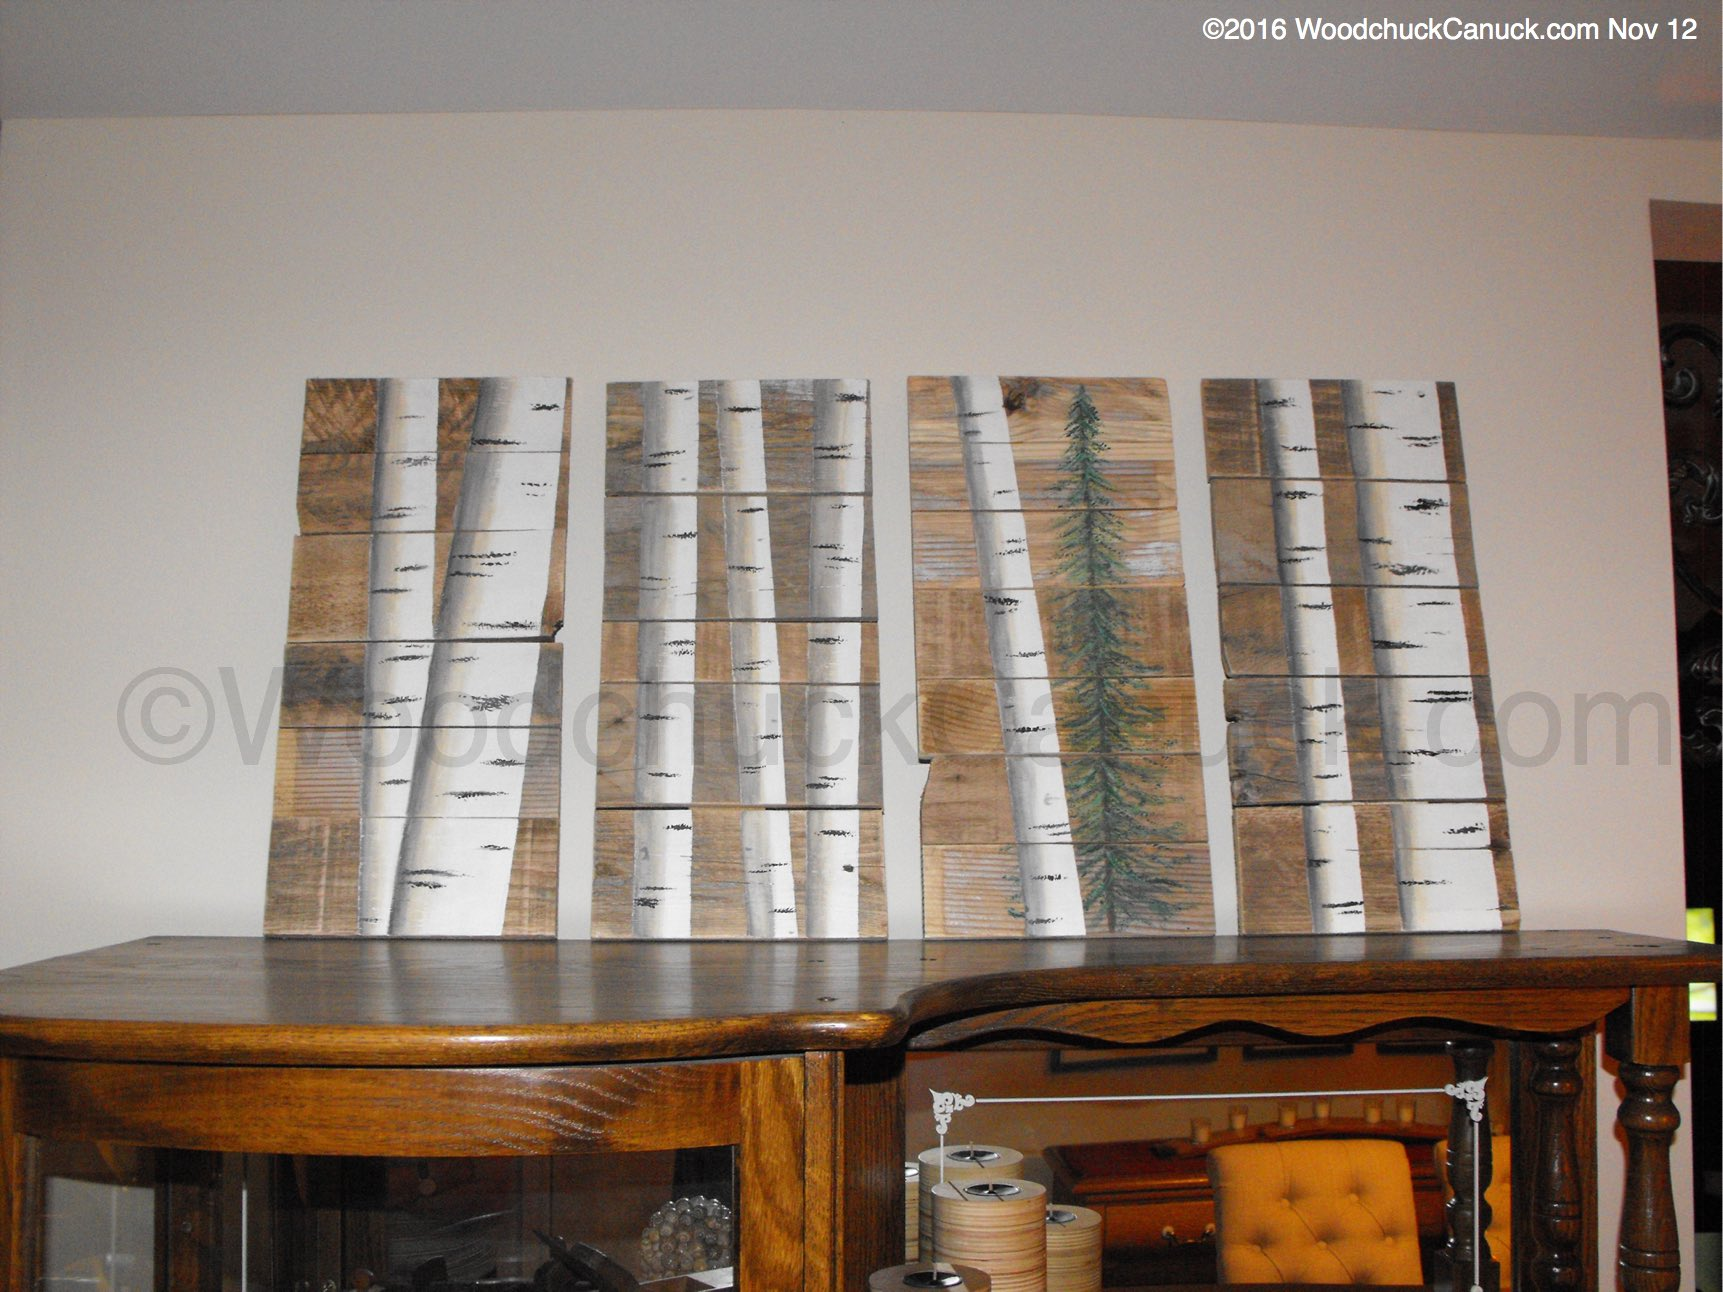 Pallet board painting – WoodchuckCanuck.com